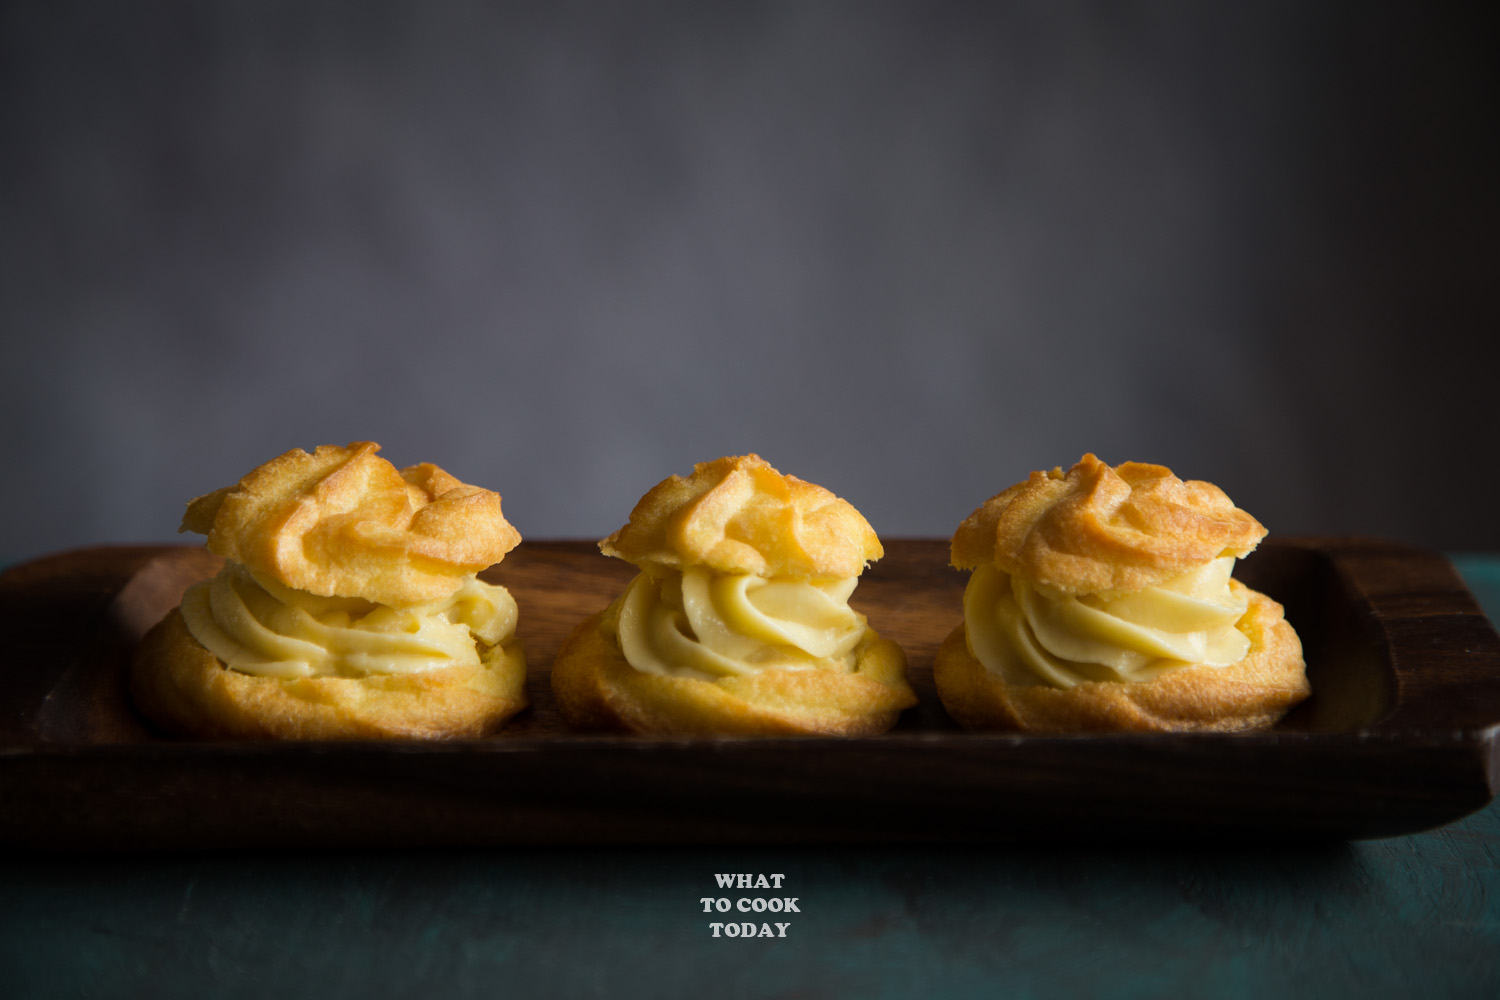 Kue Sus Isi Vla (Choux Pastry Cream Puffs)